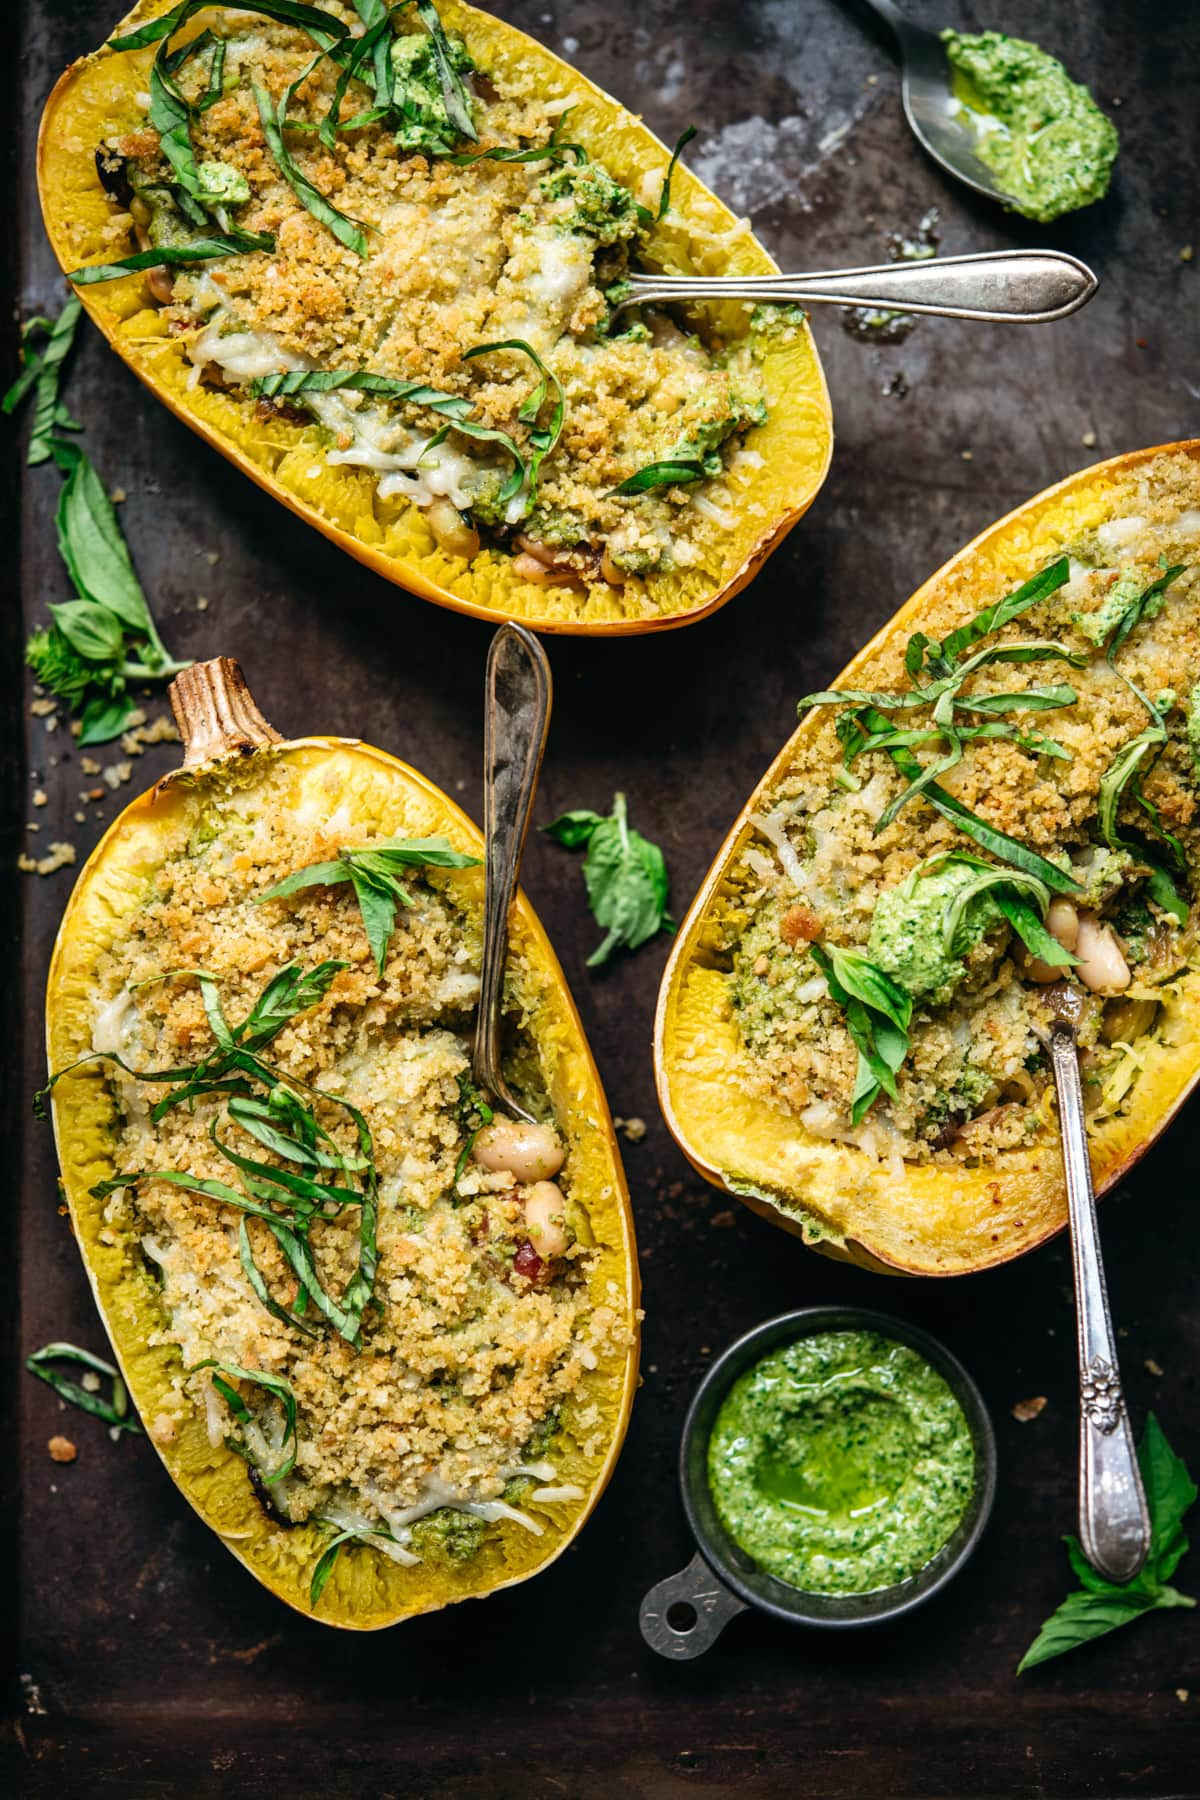 overhead view of spaghetti squash filled with pesto, white beans and topped with breadcrumbs.